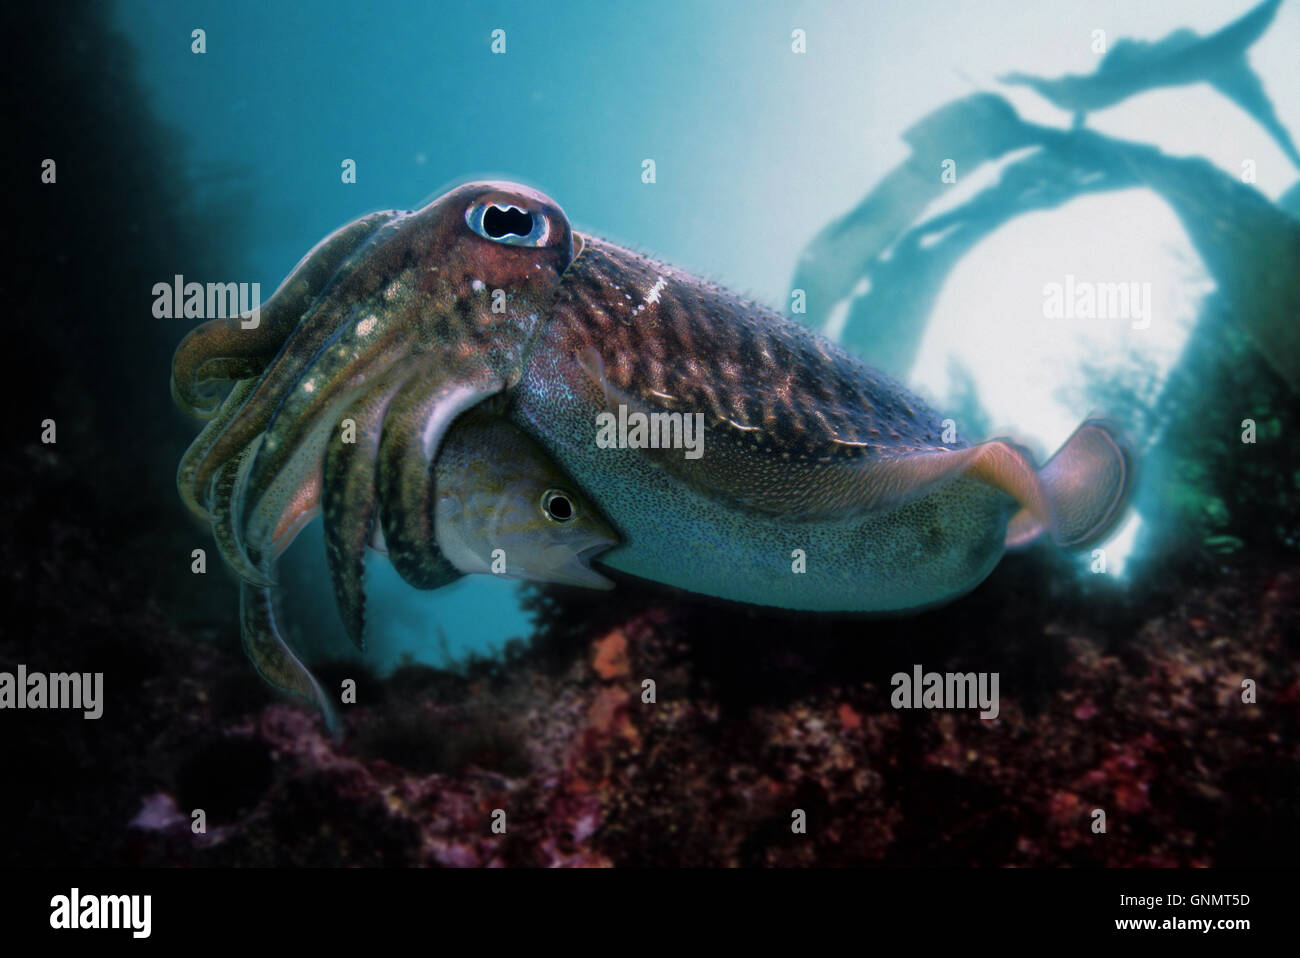 Common cuttlefish or European common cuttlefish, Sepia officinalis. Eating a Brown comber, Serranus hepatus. Portugal - Stock Image